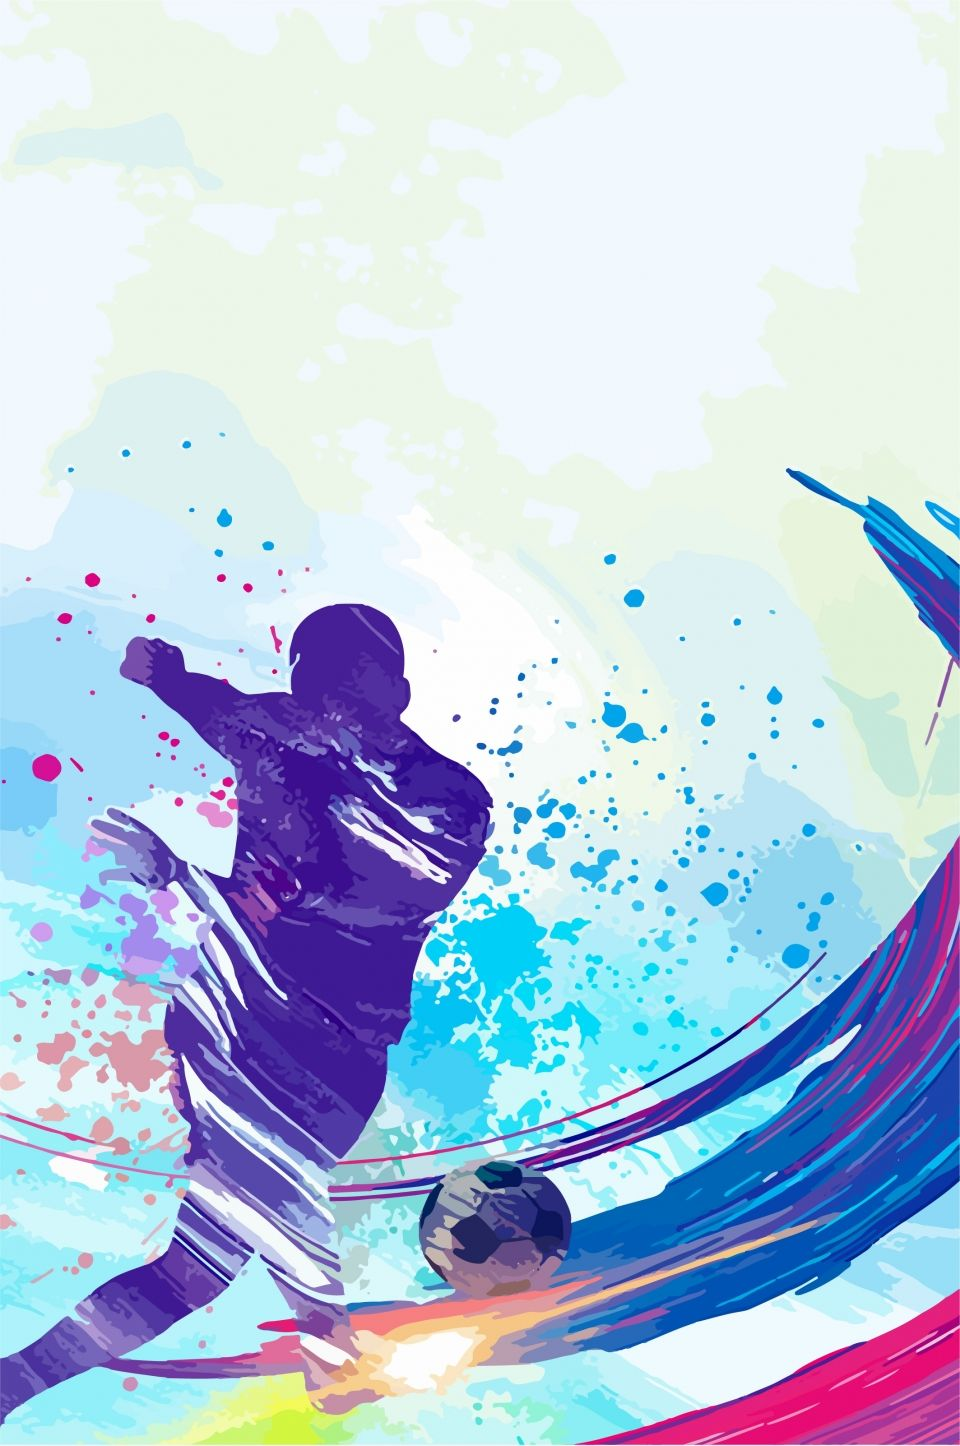 623 International Olympic Day Olympics Sports In 2020 Creative Posters Background Olympics